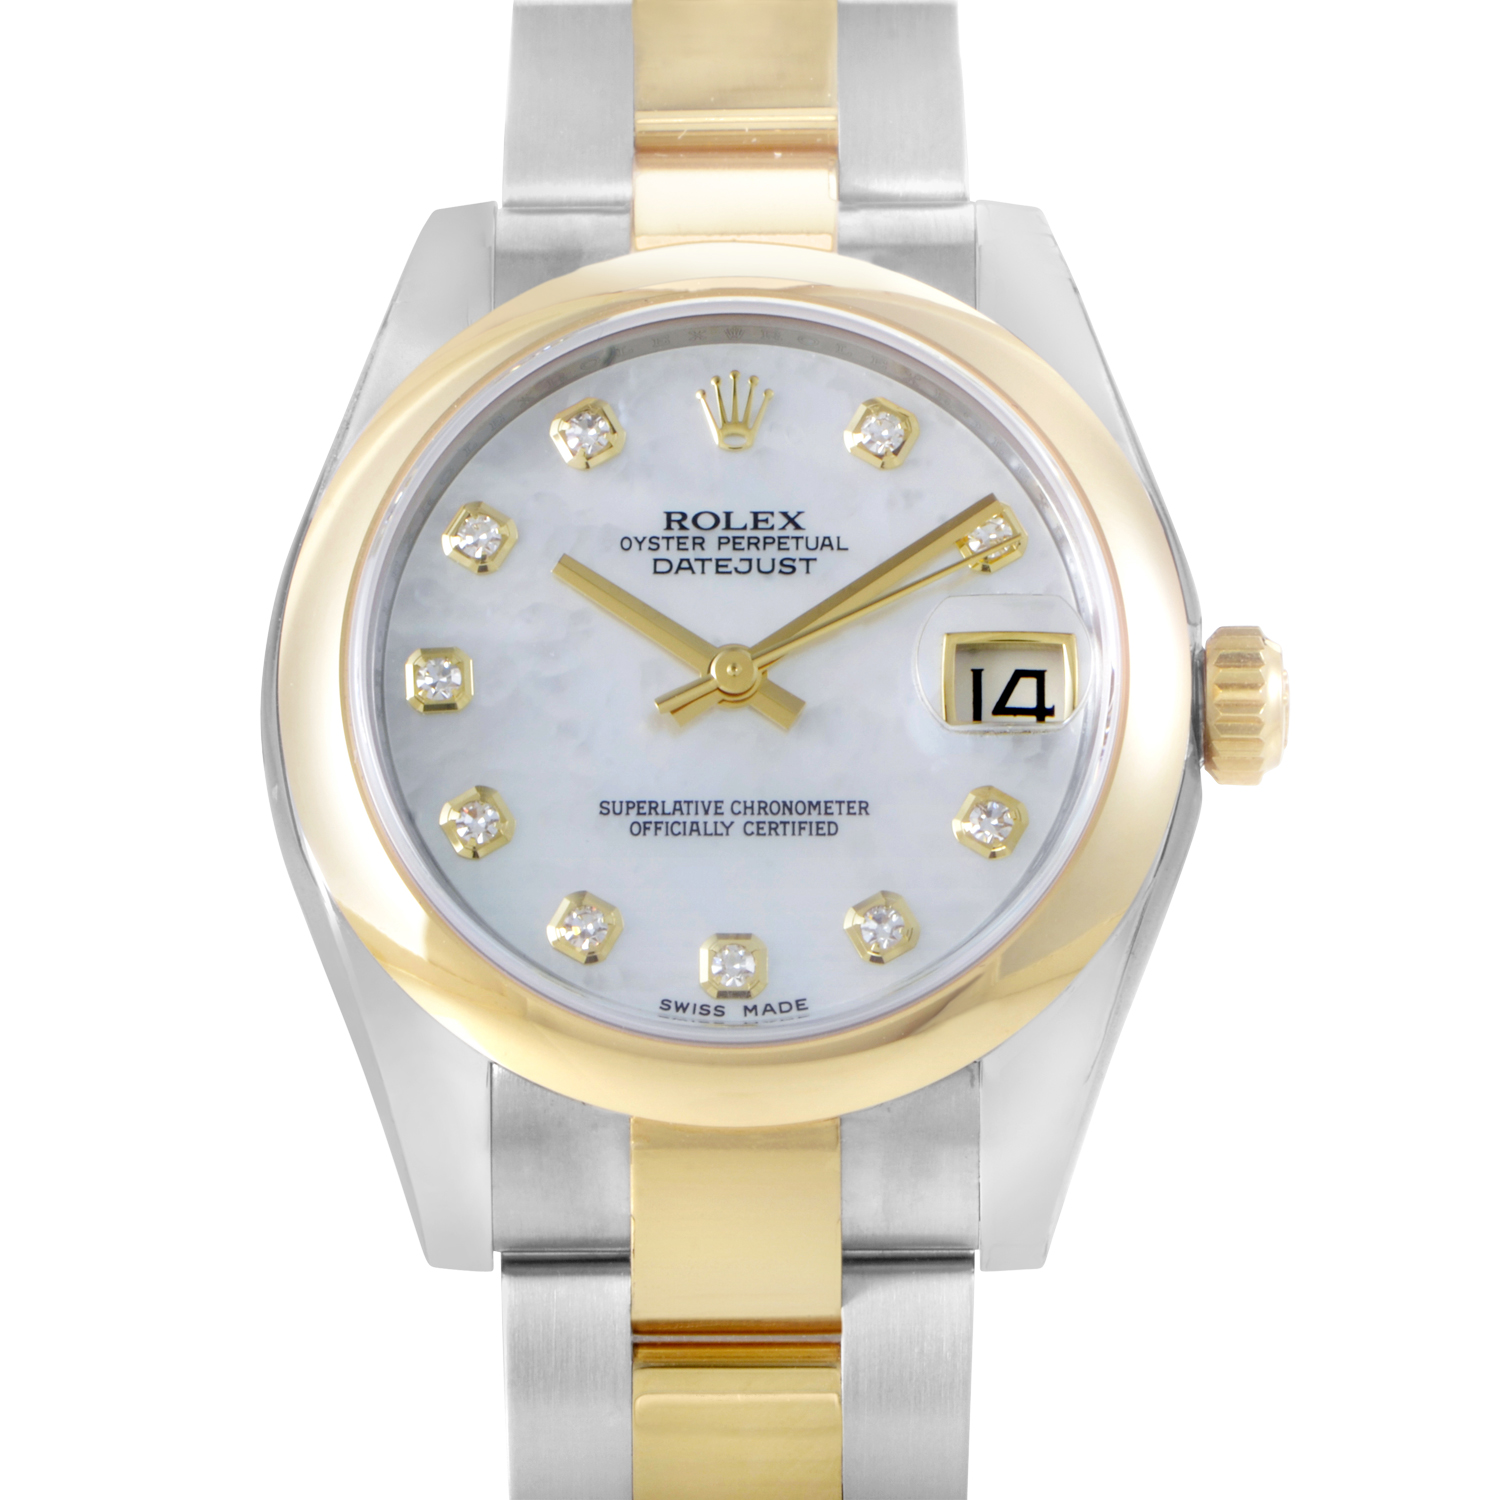 Oyster Perpetual Datejust 31mm Domed Bezel 178243 mdo